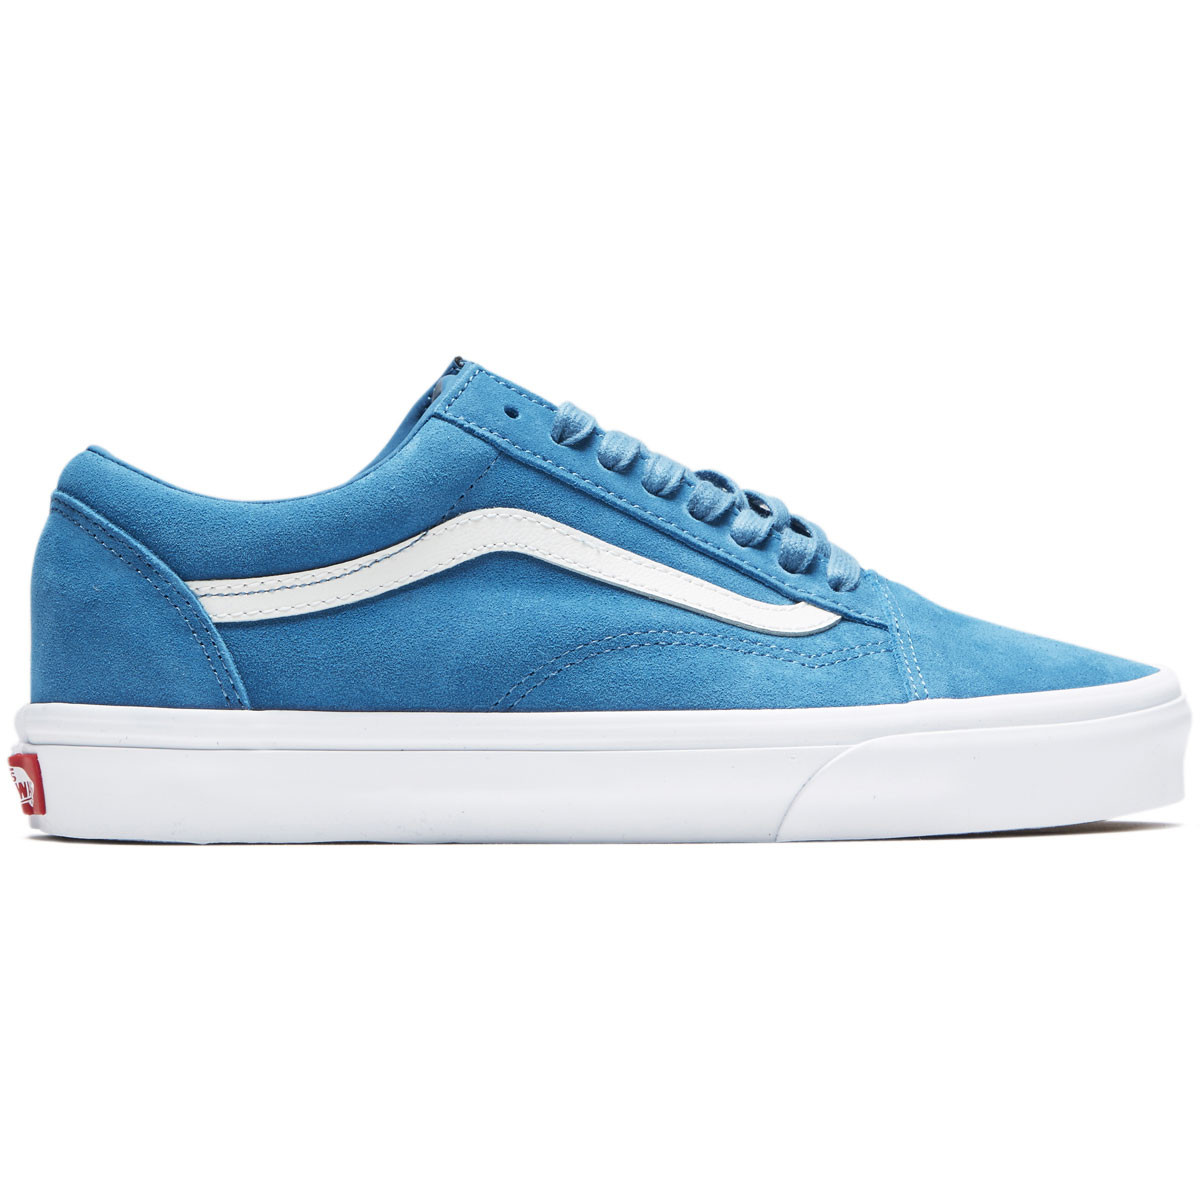 98d0360c94bbf6 Vans Old Skool Shoes - Blue Sapphire True White - 8.0